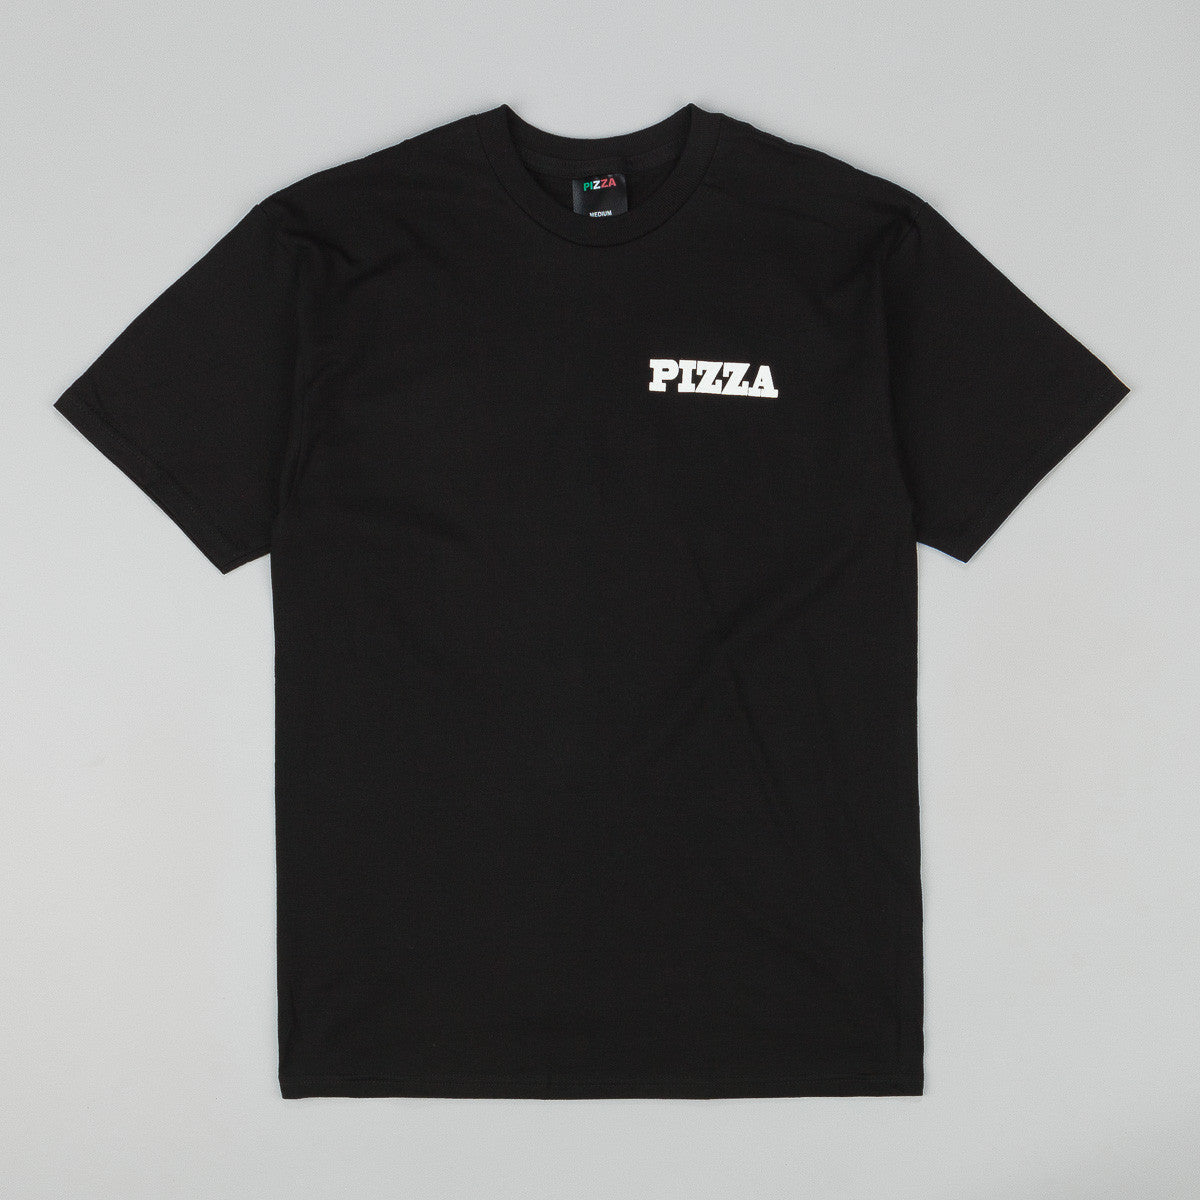 Pizza Skateboards Pizzaboy T-Shirt